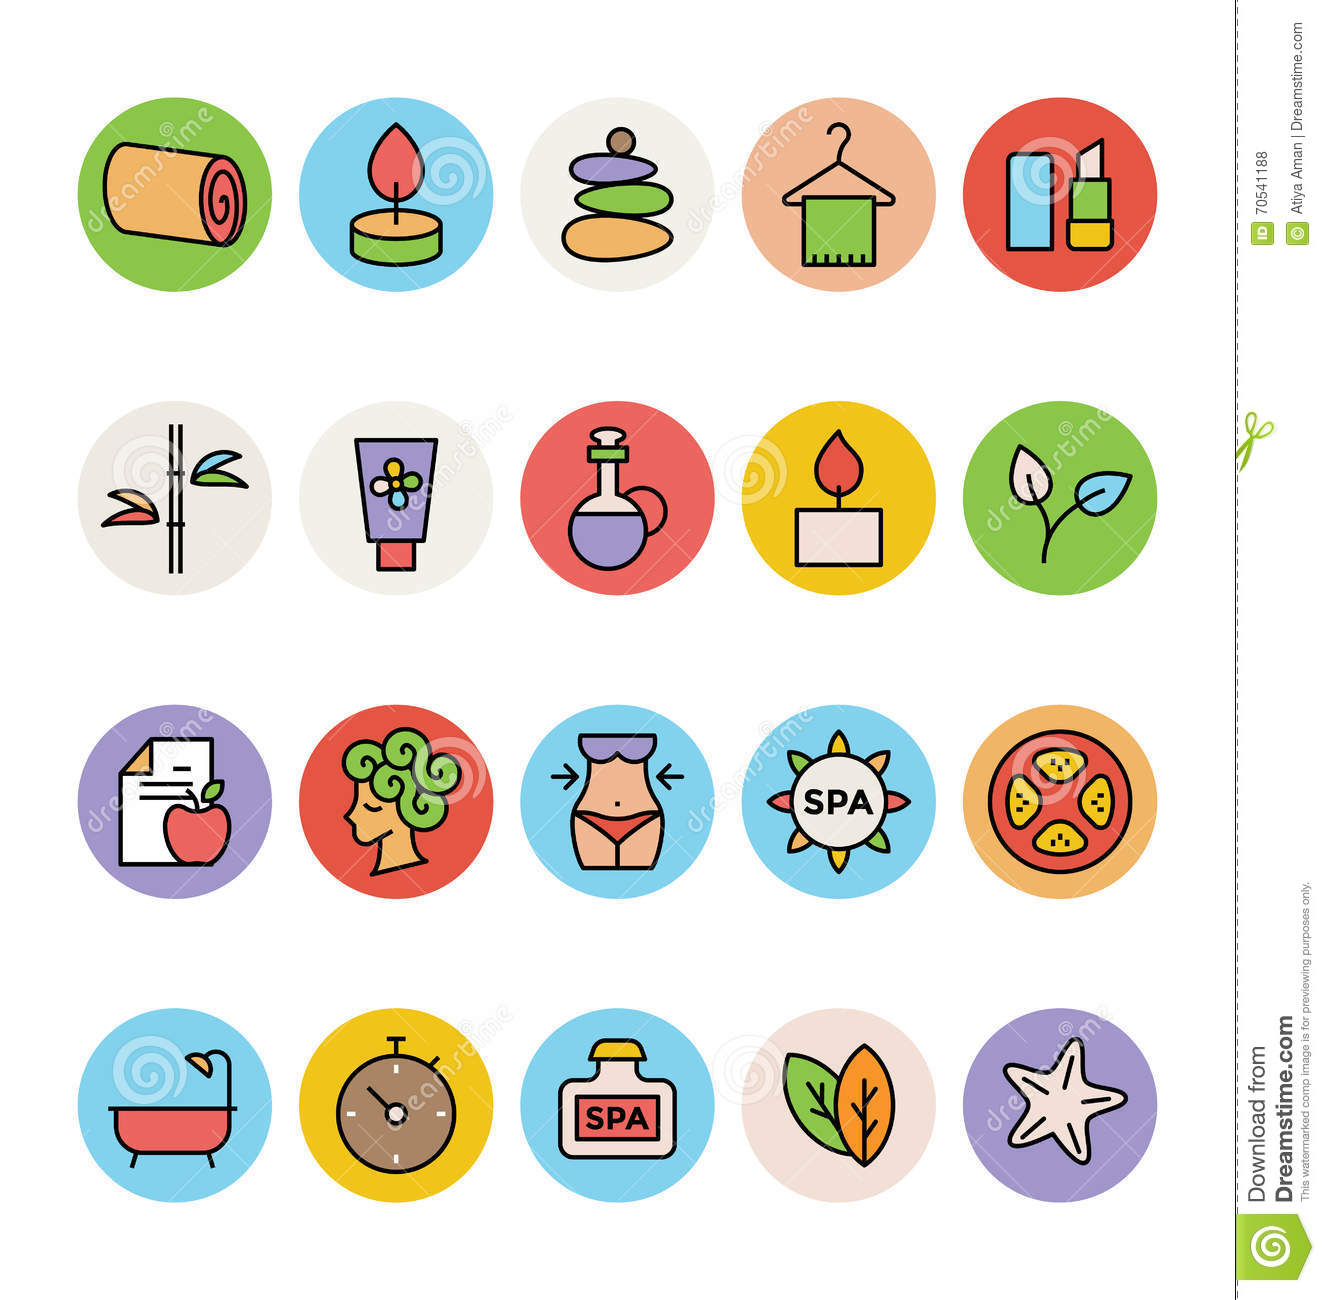 SPA Colored Vector Icons 3 Stock Illustration. Image Of